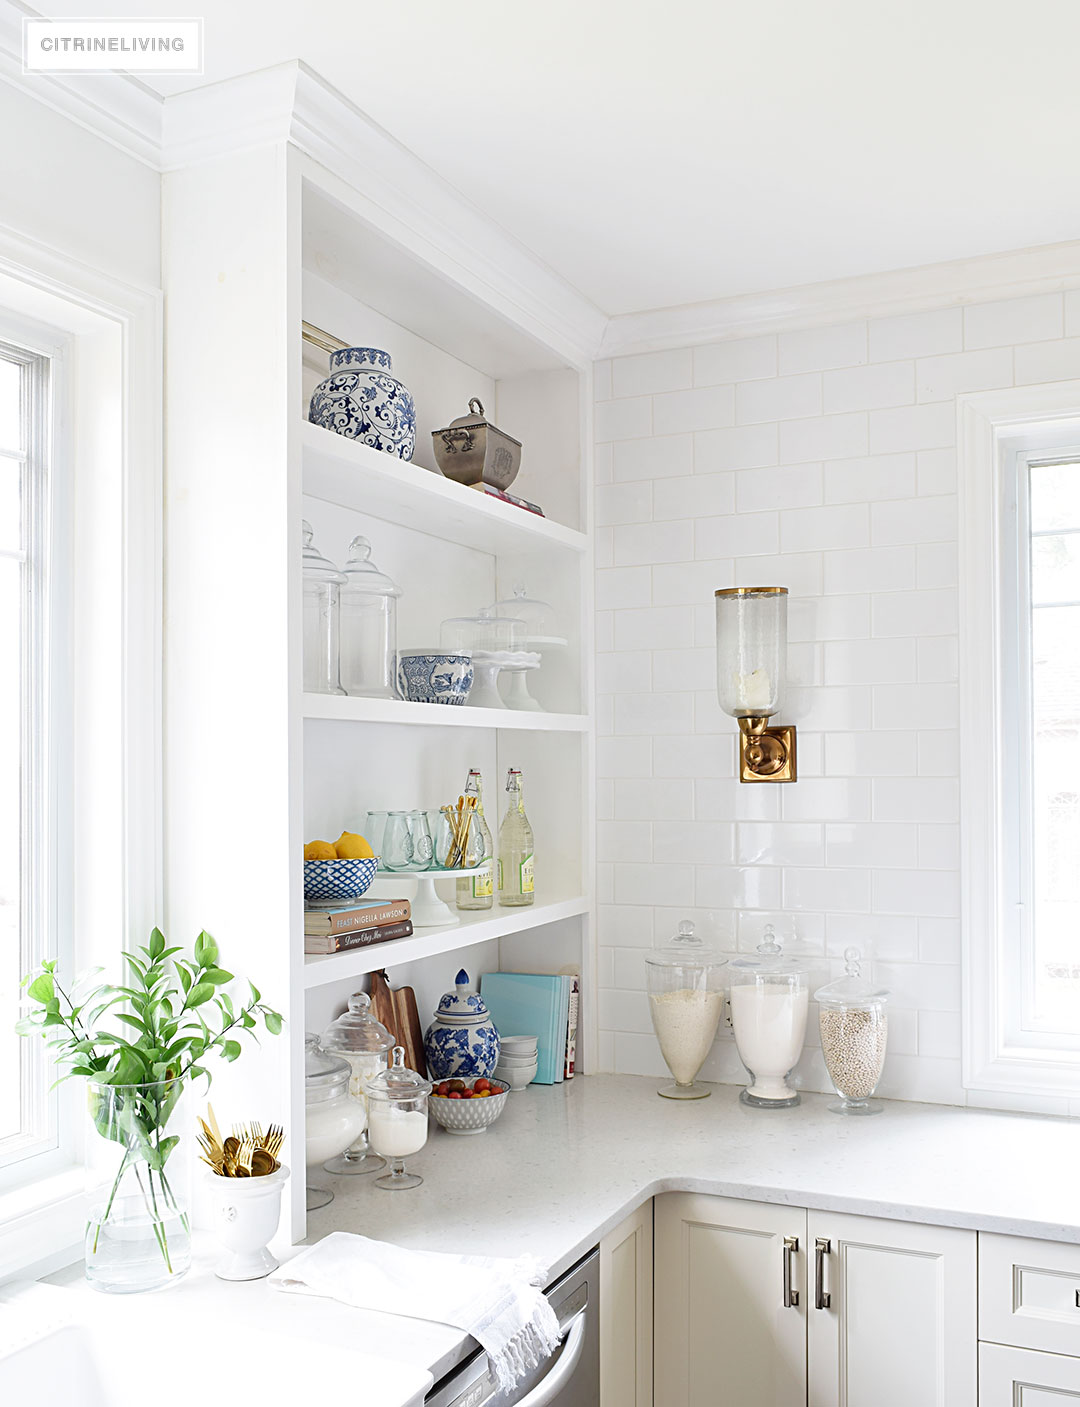 Create a curated, collected, artisanal look on your kitchen shelves with a mix of cookbooks, wood, glass, blue and white, and gourmet inspired accents.